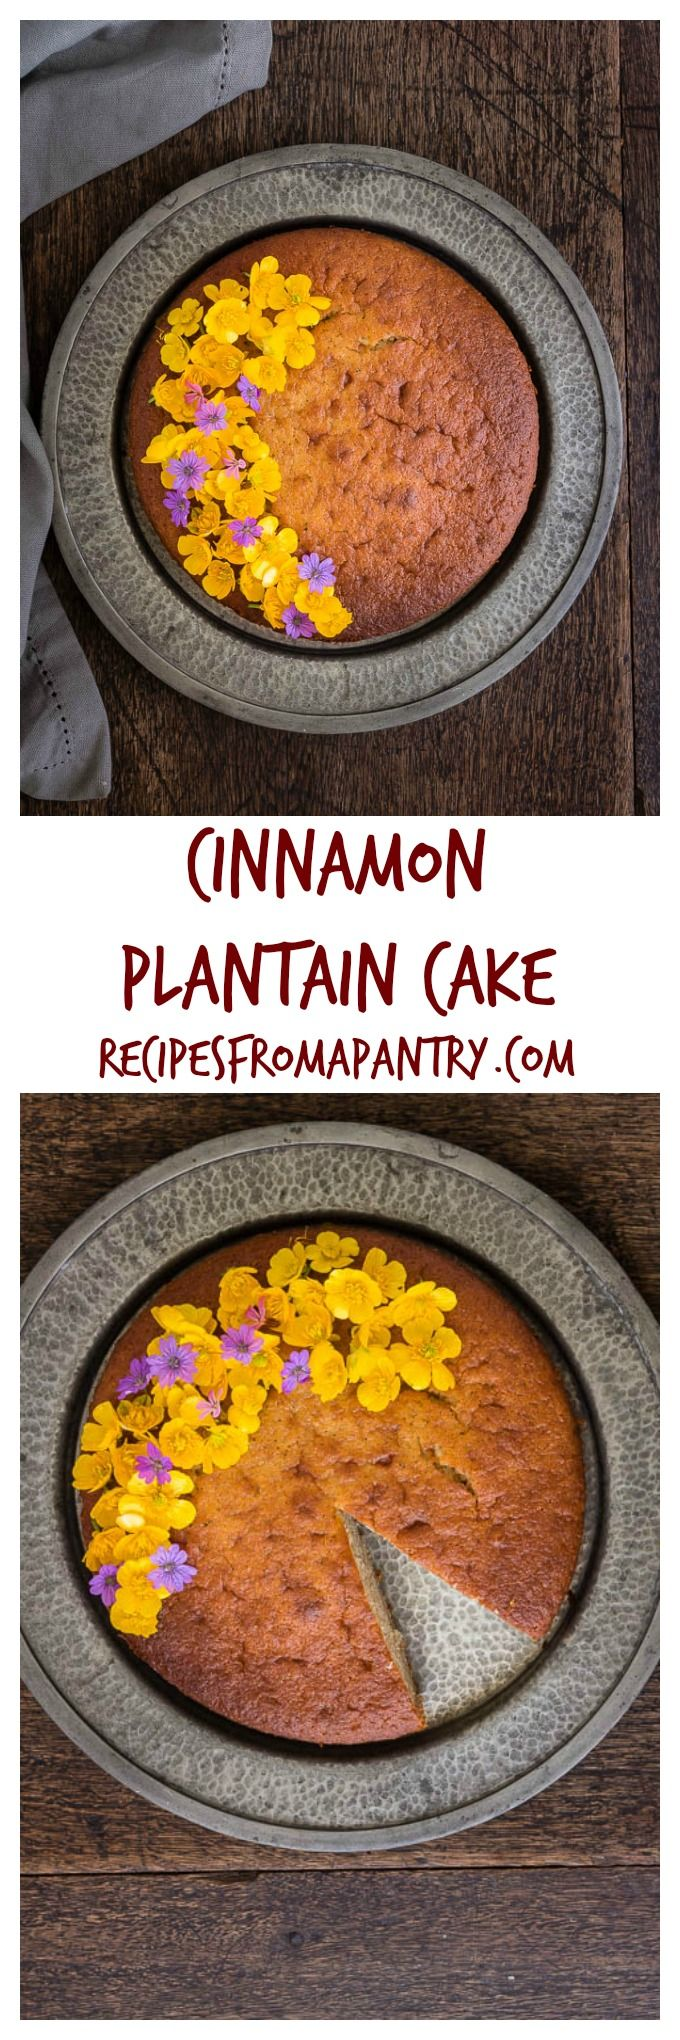 Cinnamon Plantain Cake | Recipes From A Pantry